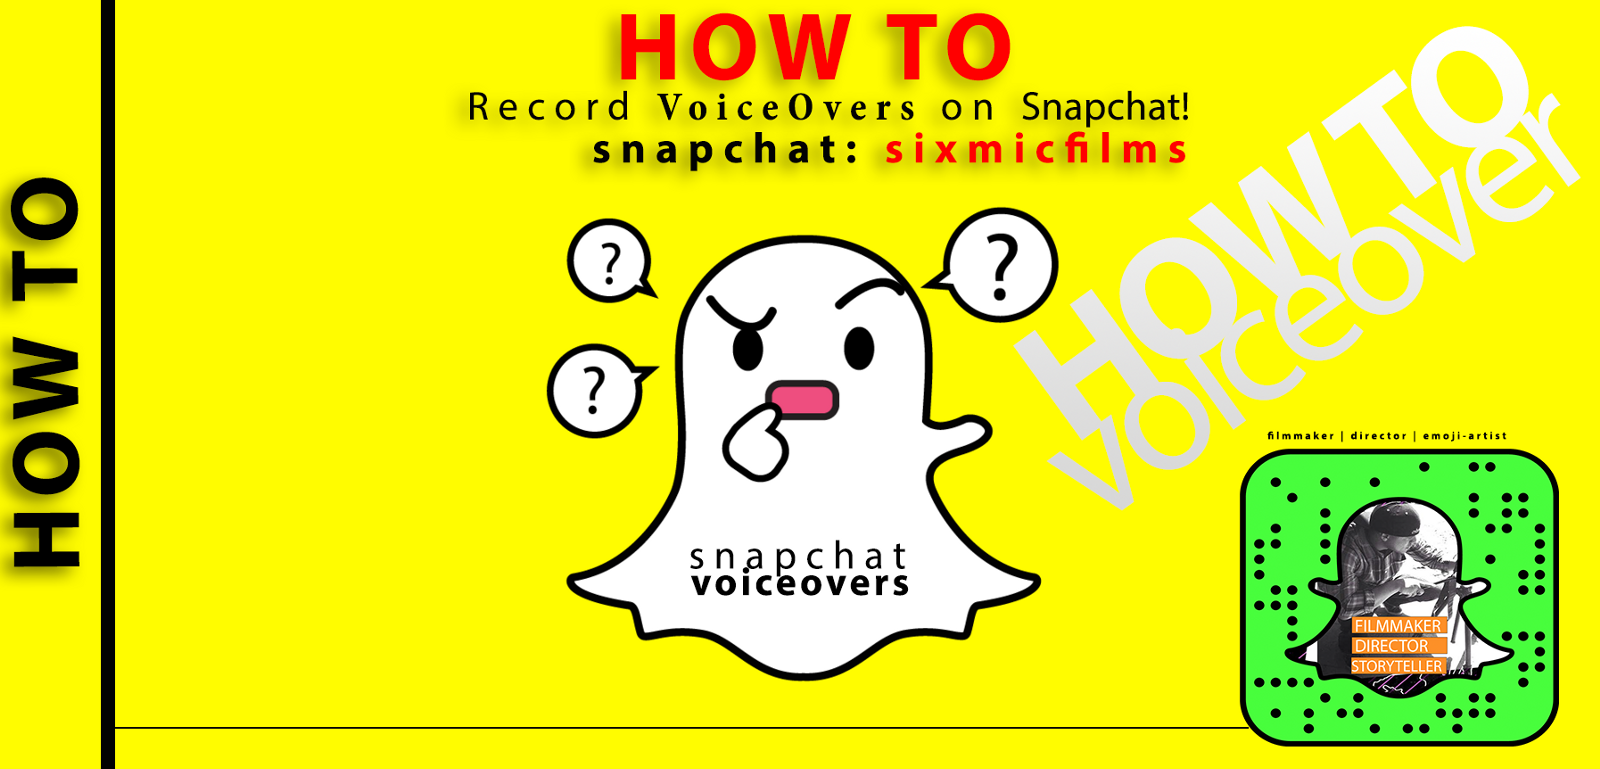 how to record voice overs on snapchat quick tips snapchat